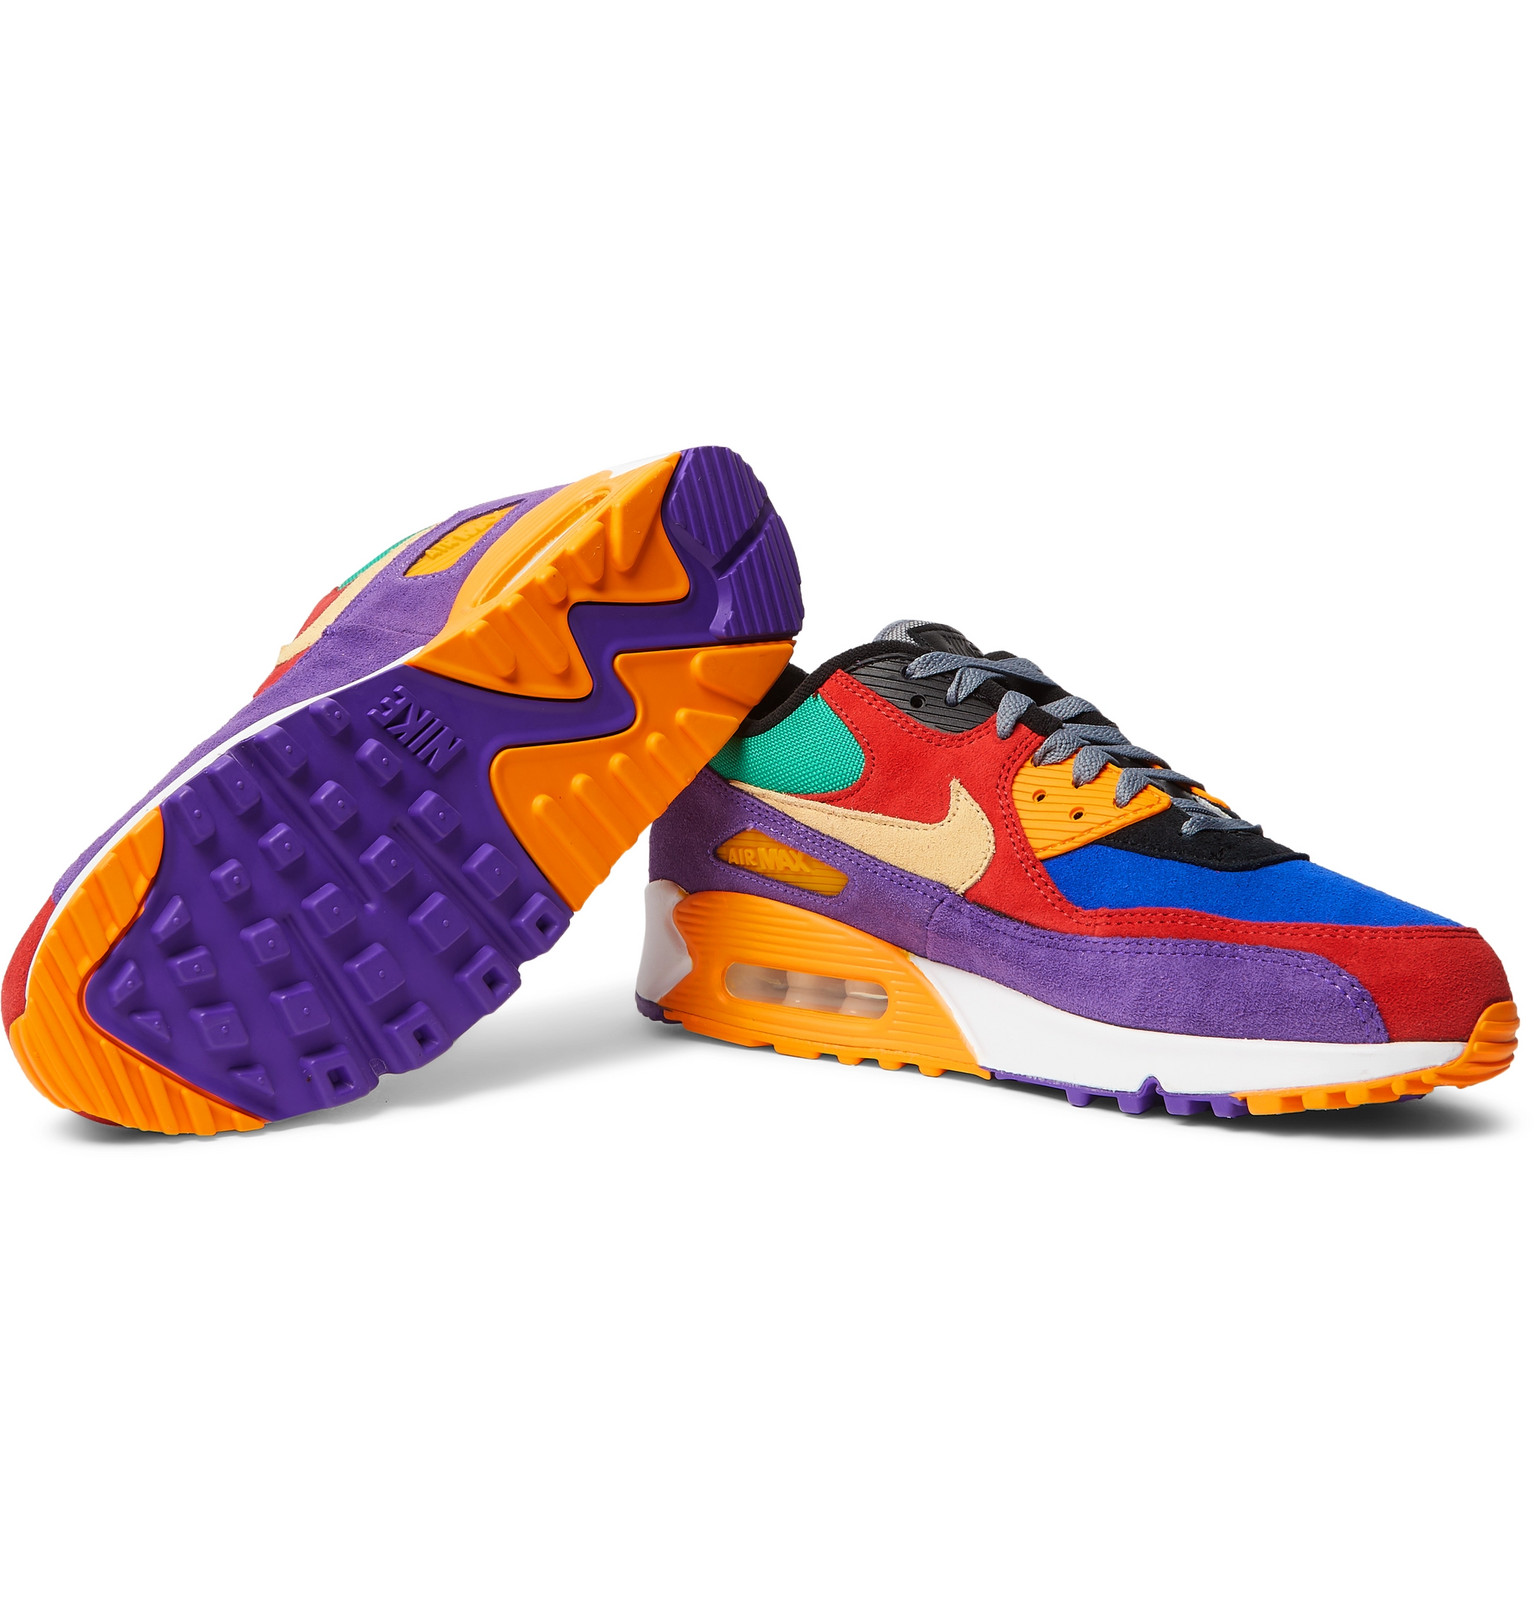 """Details about NIKE AIR MAX 90 Essential """"Grape"""" MEN'S RUNNING SHOES LIFESTYLE COMFY SNEAKERS"""